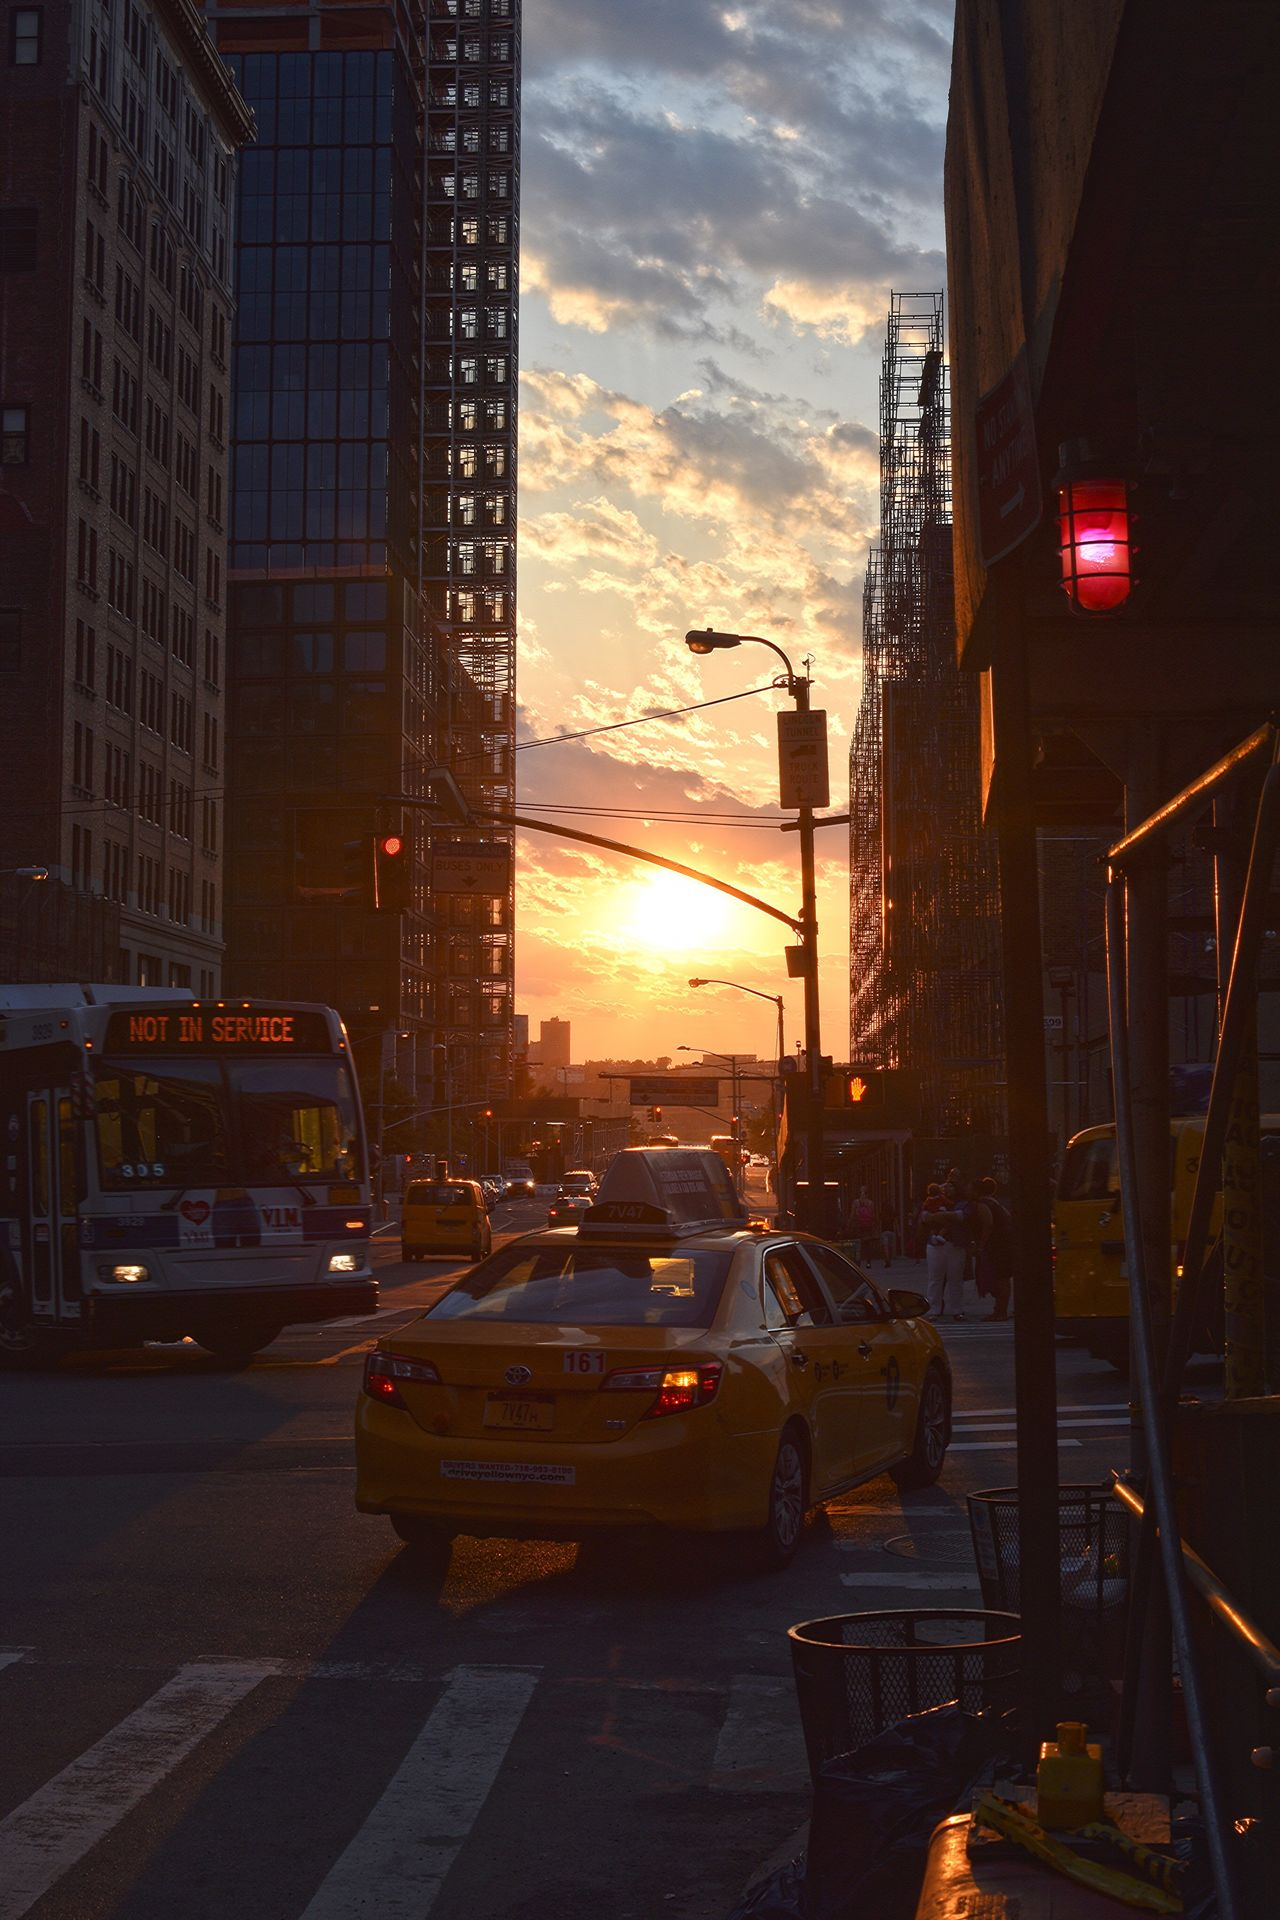 Car Sunset Transportation Land Vehicle Building Exterior Architecture Built Structure City Mode Of Transport Sky Outdoors Illuminated No People Road Day Silhouette Silhouettes Silhouette_collection Cab Nyc Taxi NYC Street Photography NYC Photography NYC NYC Street Sunset Silhouettes